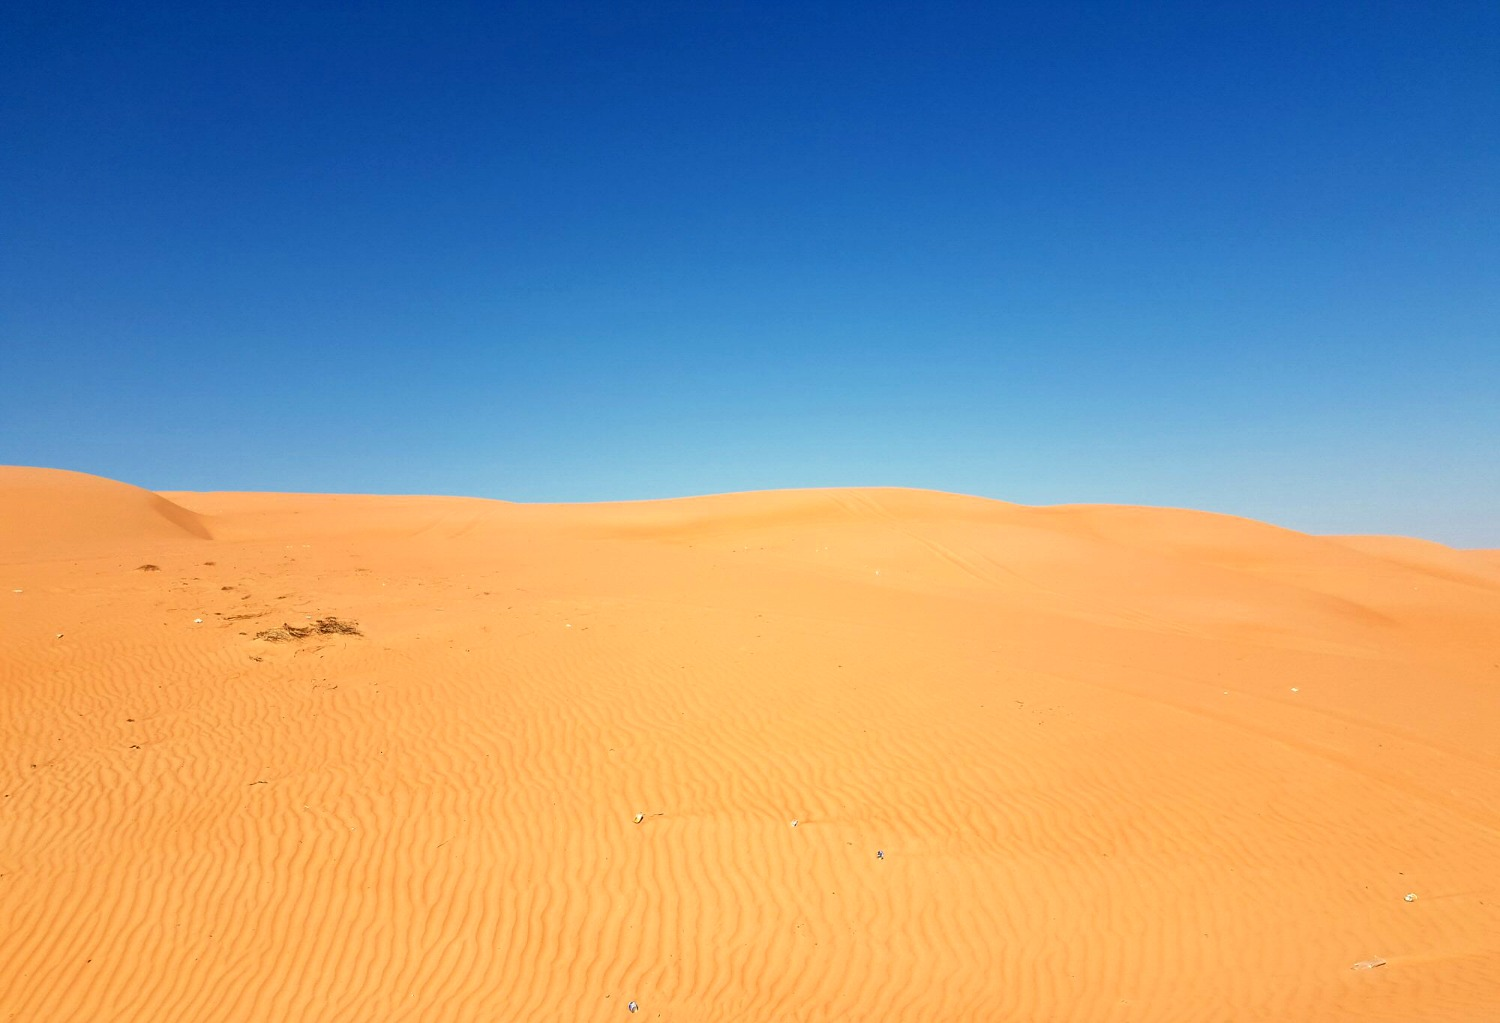 Bright orange sand against a bright blue sky at Wahiba Sands in Oman - my nine reasons to visit Oman with kids